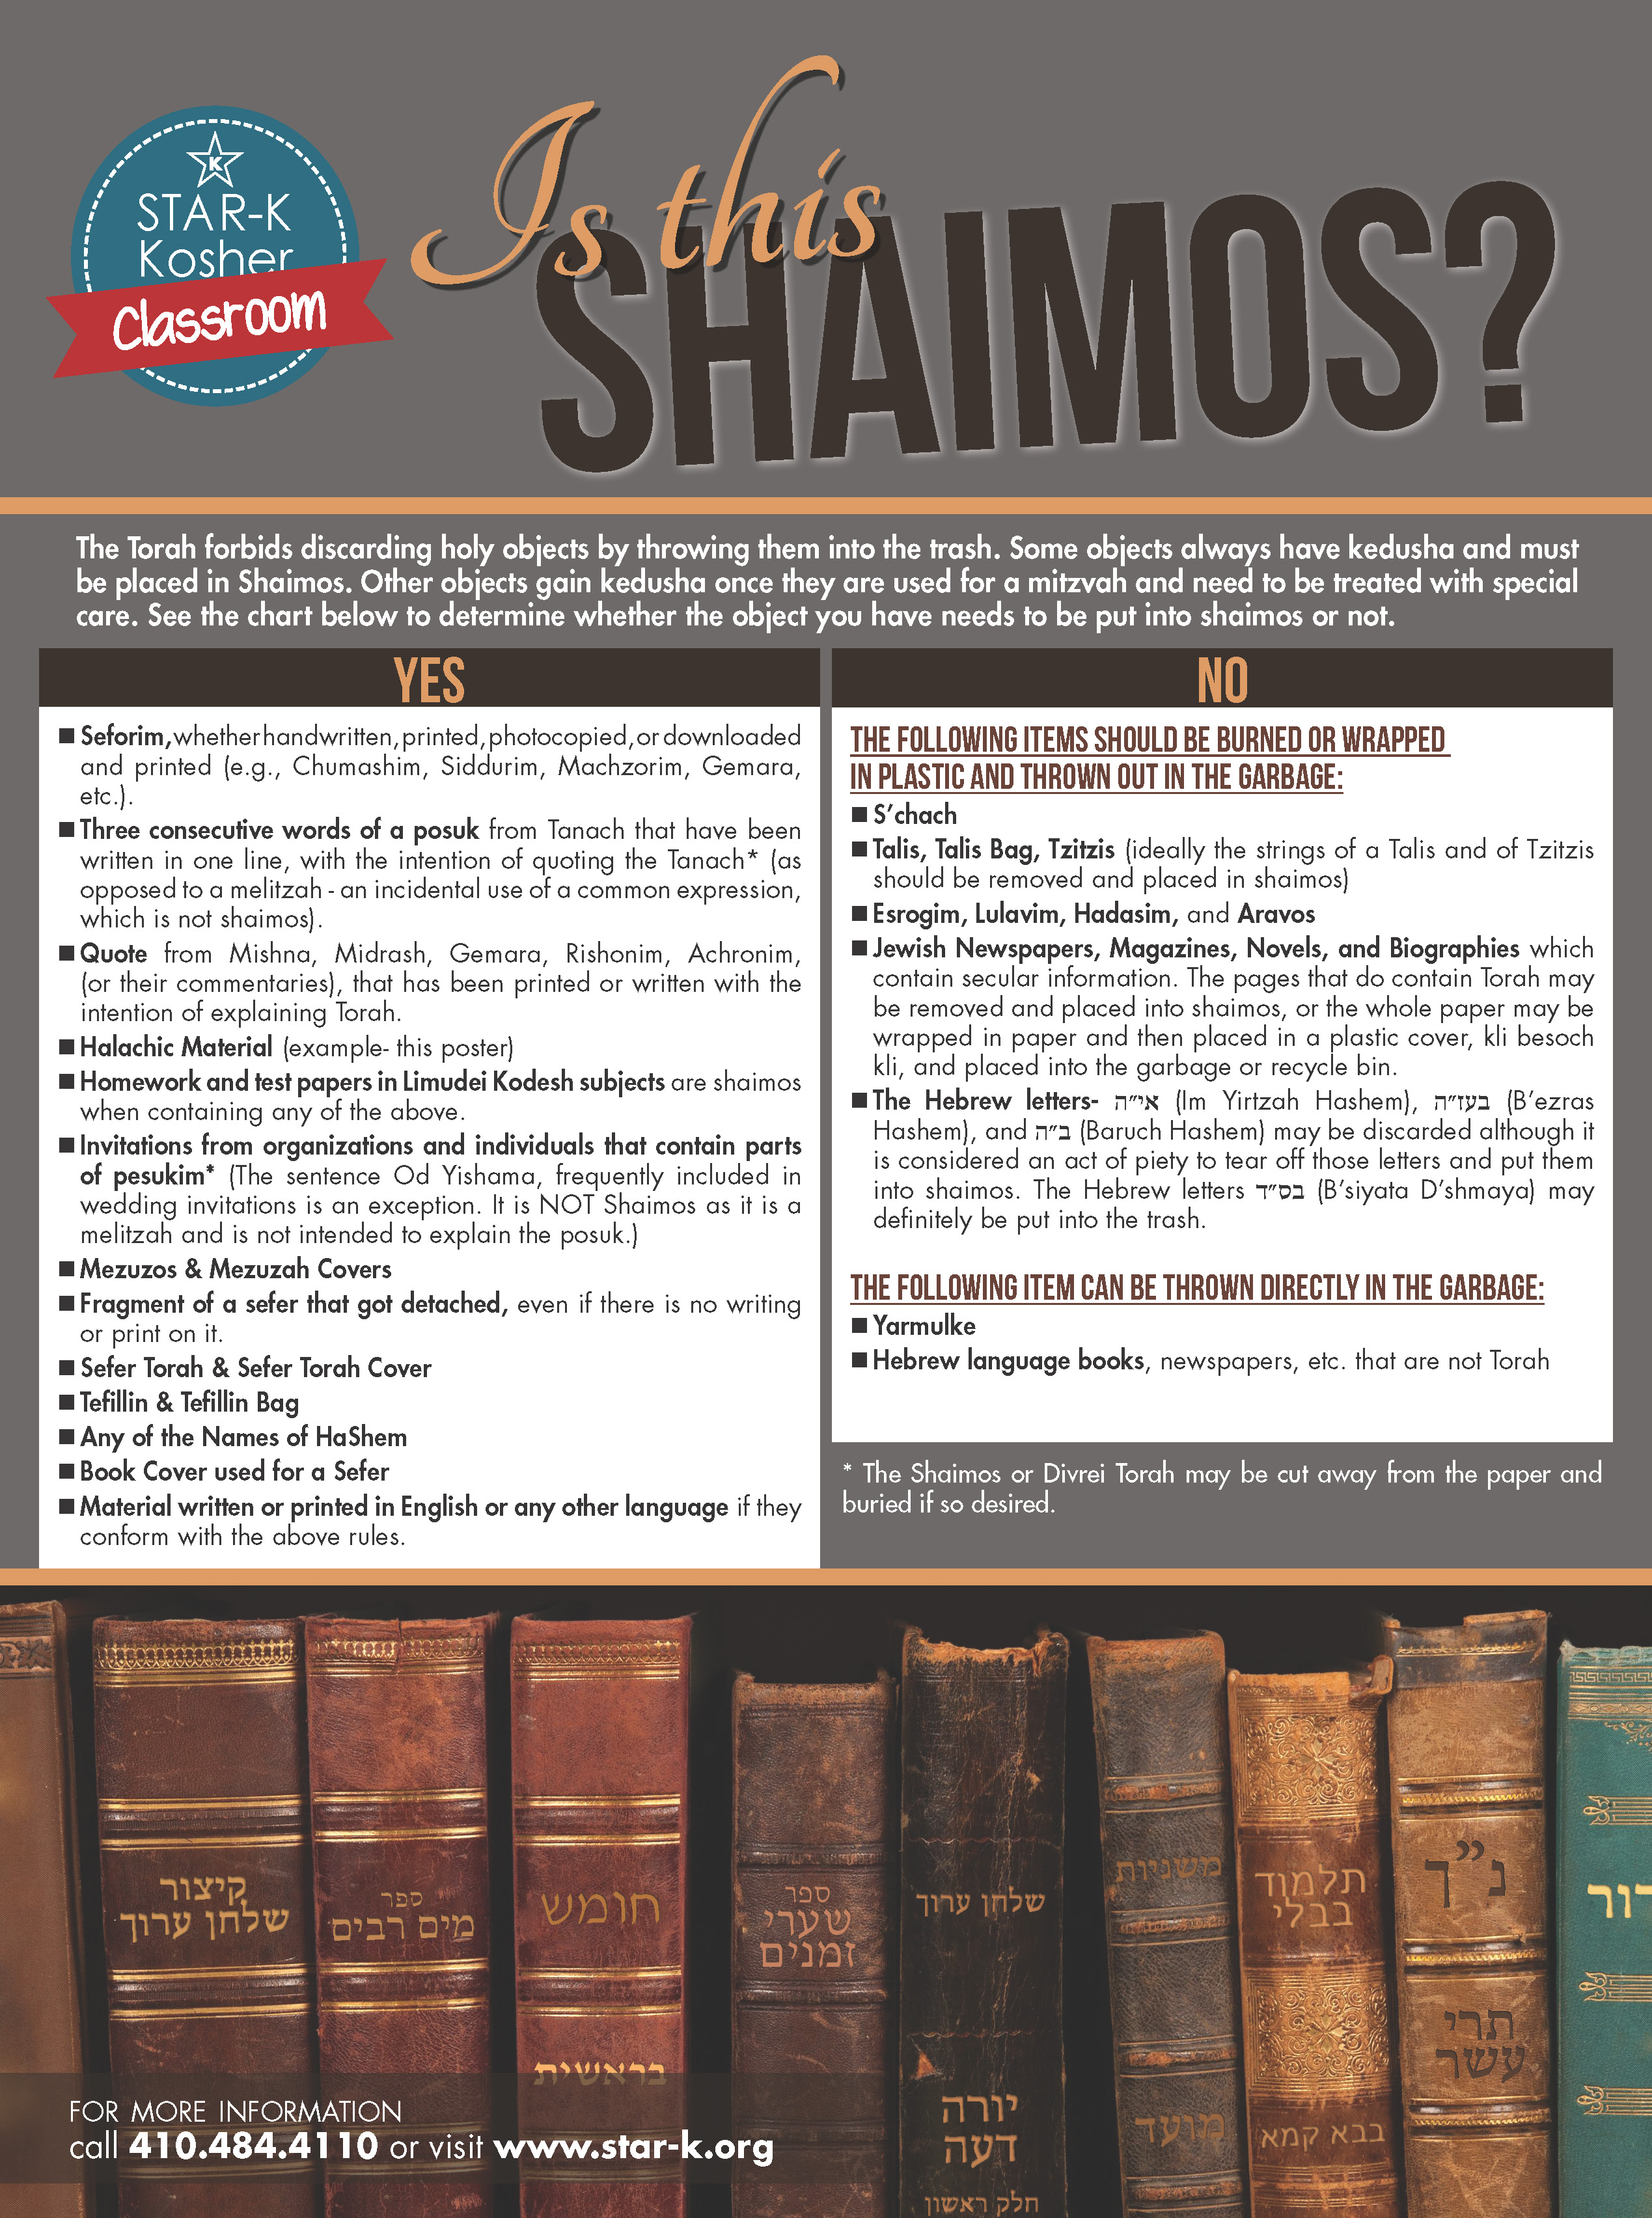 What is considered Shaimos